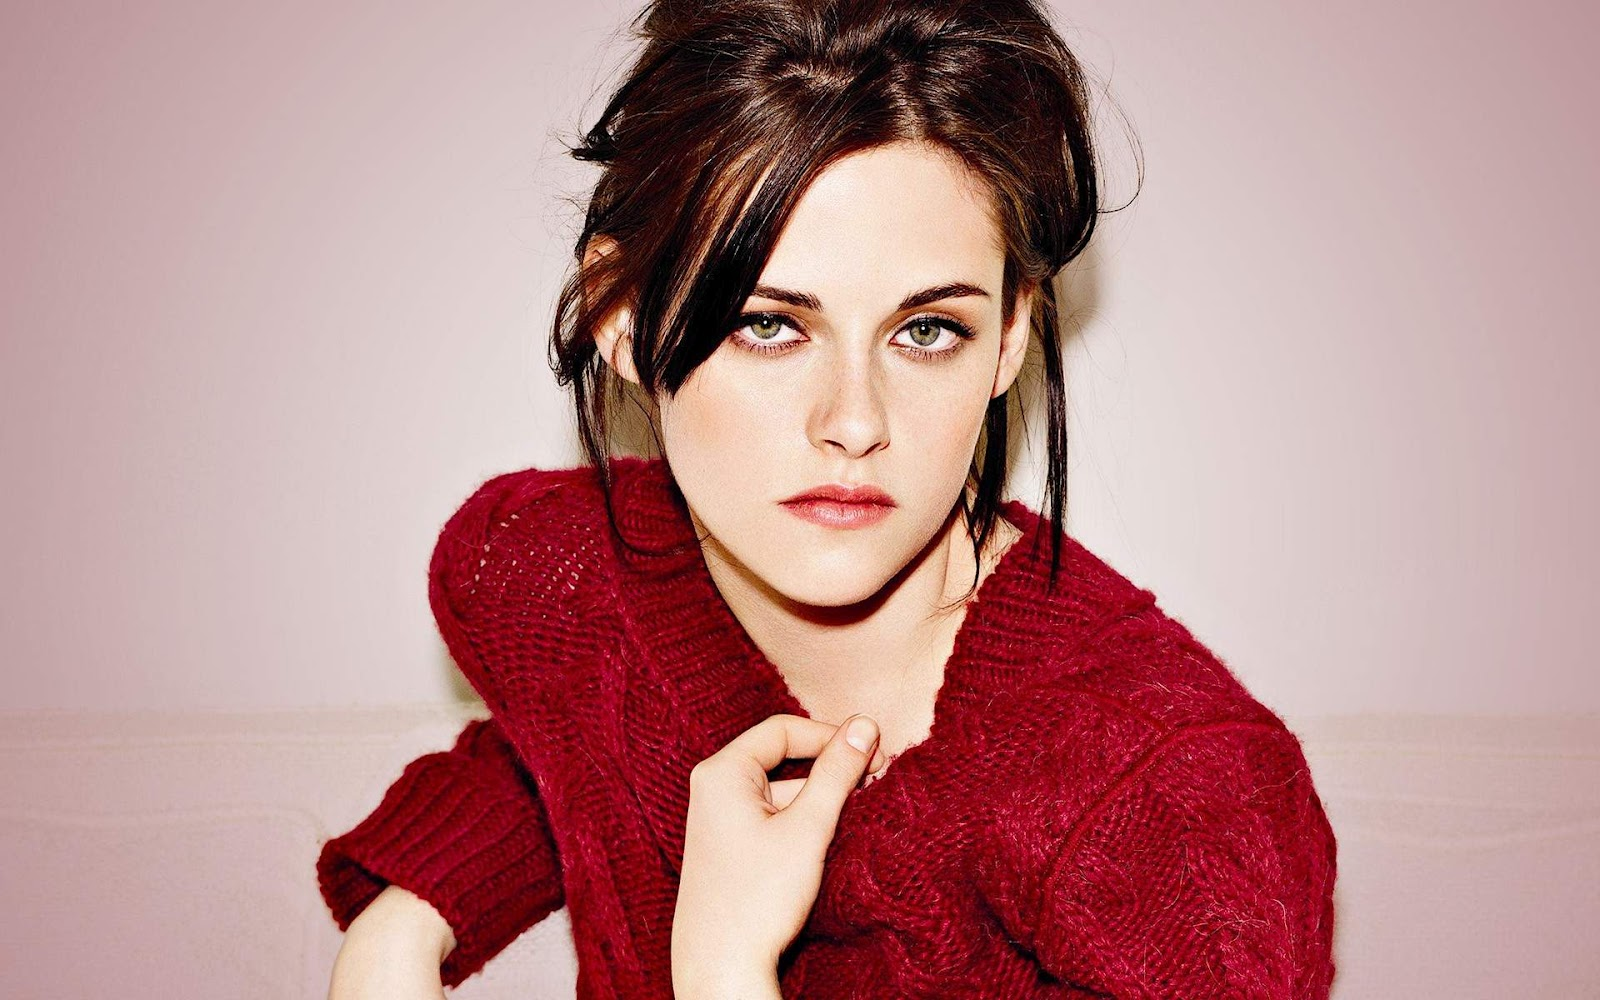 kristen stewart wallpaper Full face